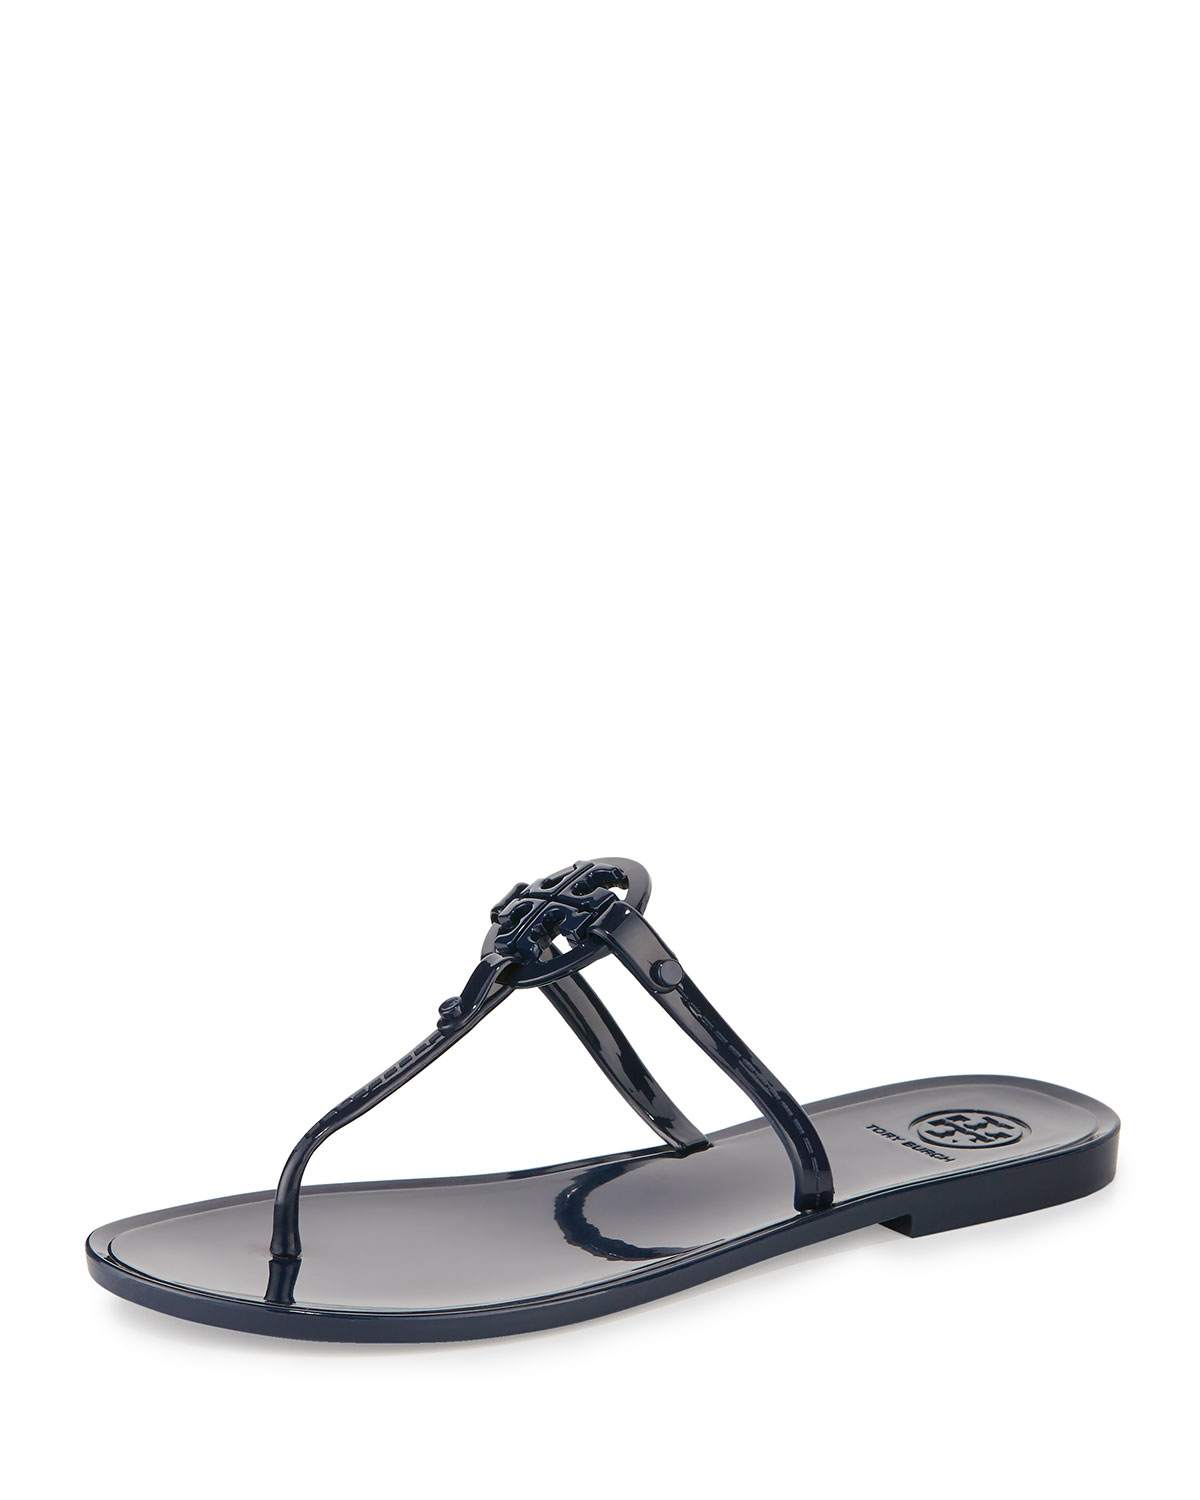 b91c11aa8 Lyst - Tory Burch Colori Logo-Detail Jelly Sandals in Blue